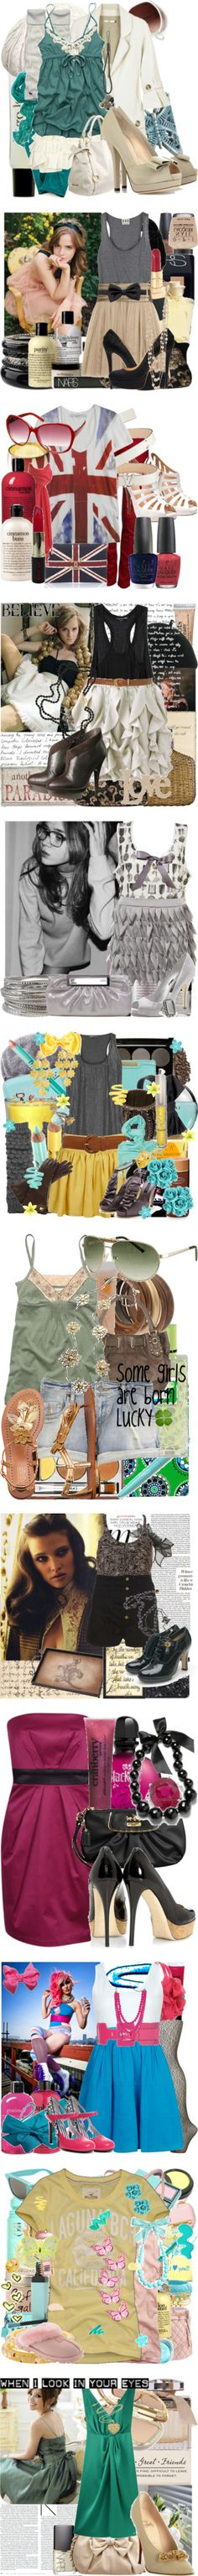 """""""Old Sets that I'm Proud Of"""" by sweetart1699 ❤ liked on Polyvore"""